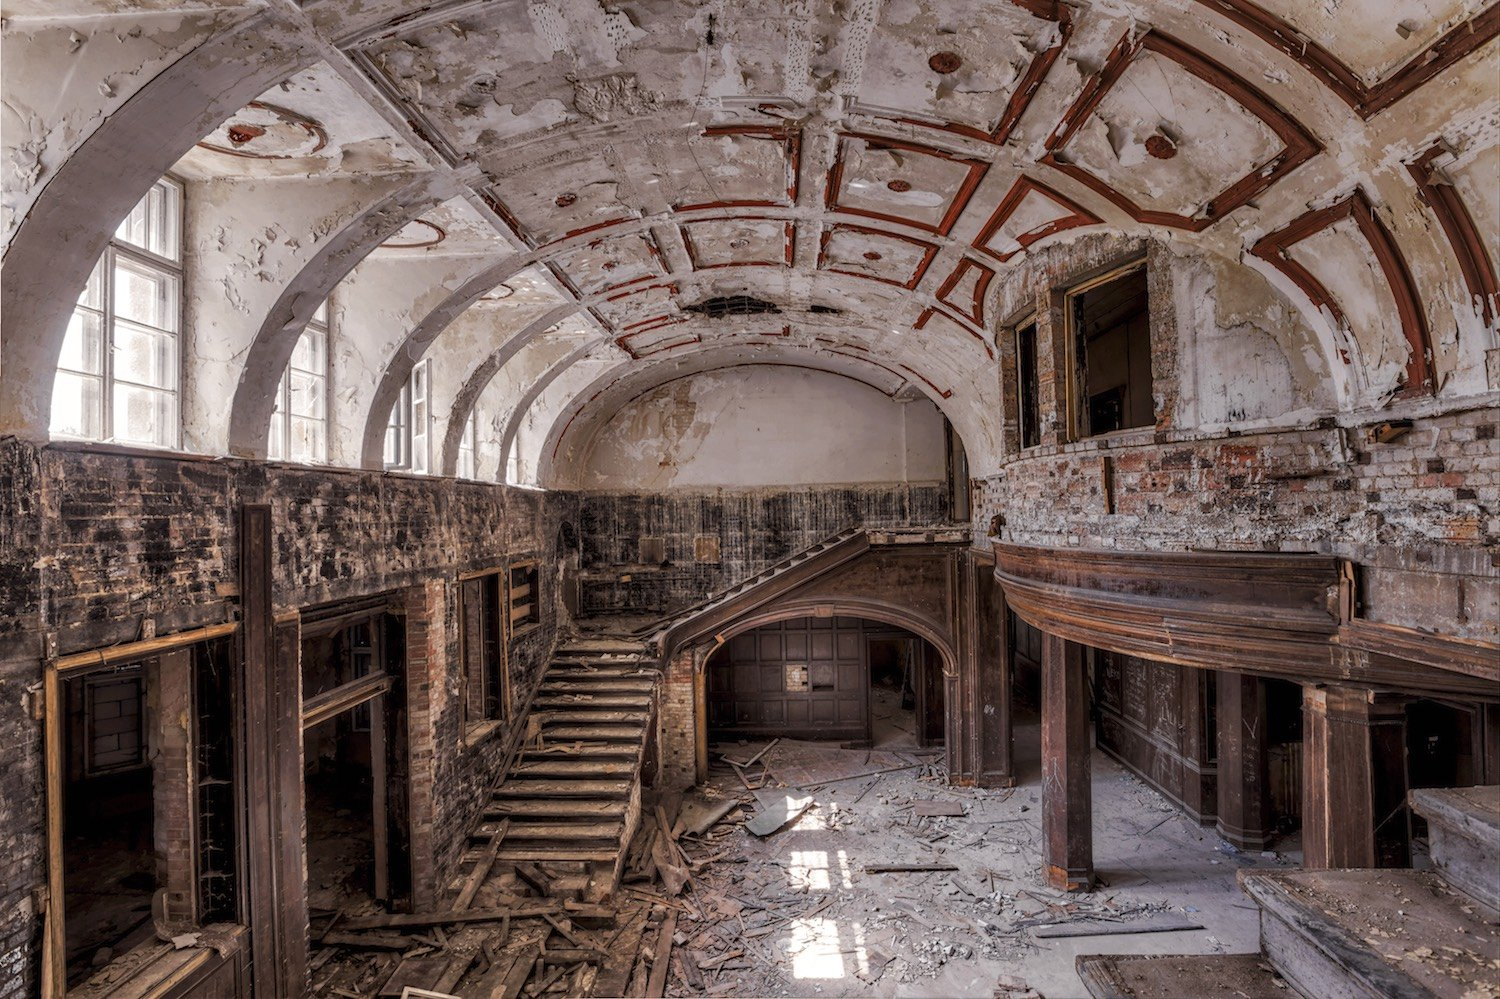 abandoned wooden entry hall with staircase